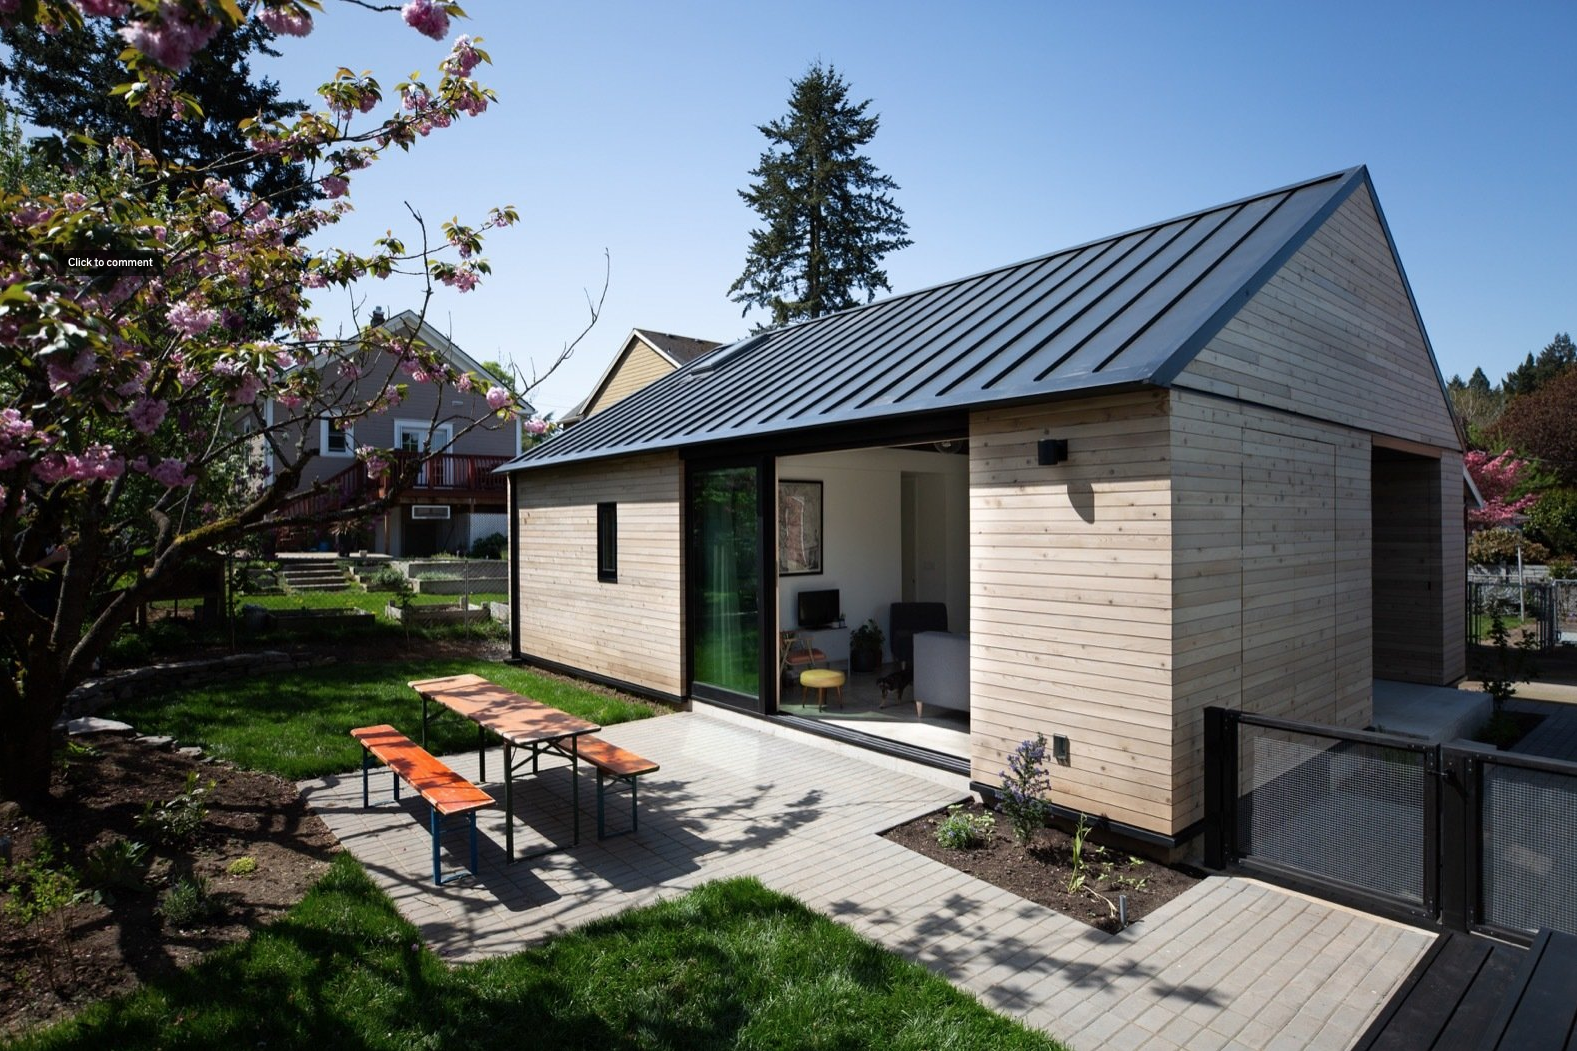 A portland couple design and build a compact home for 222k